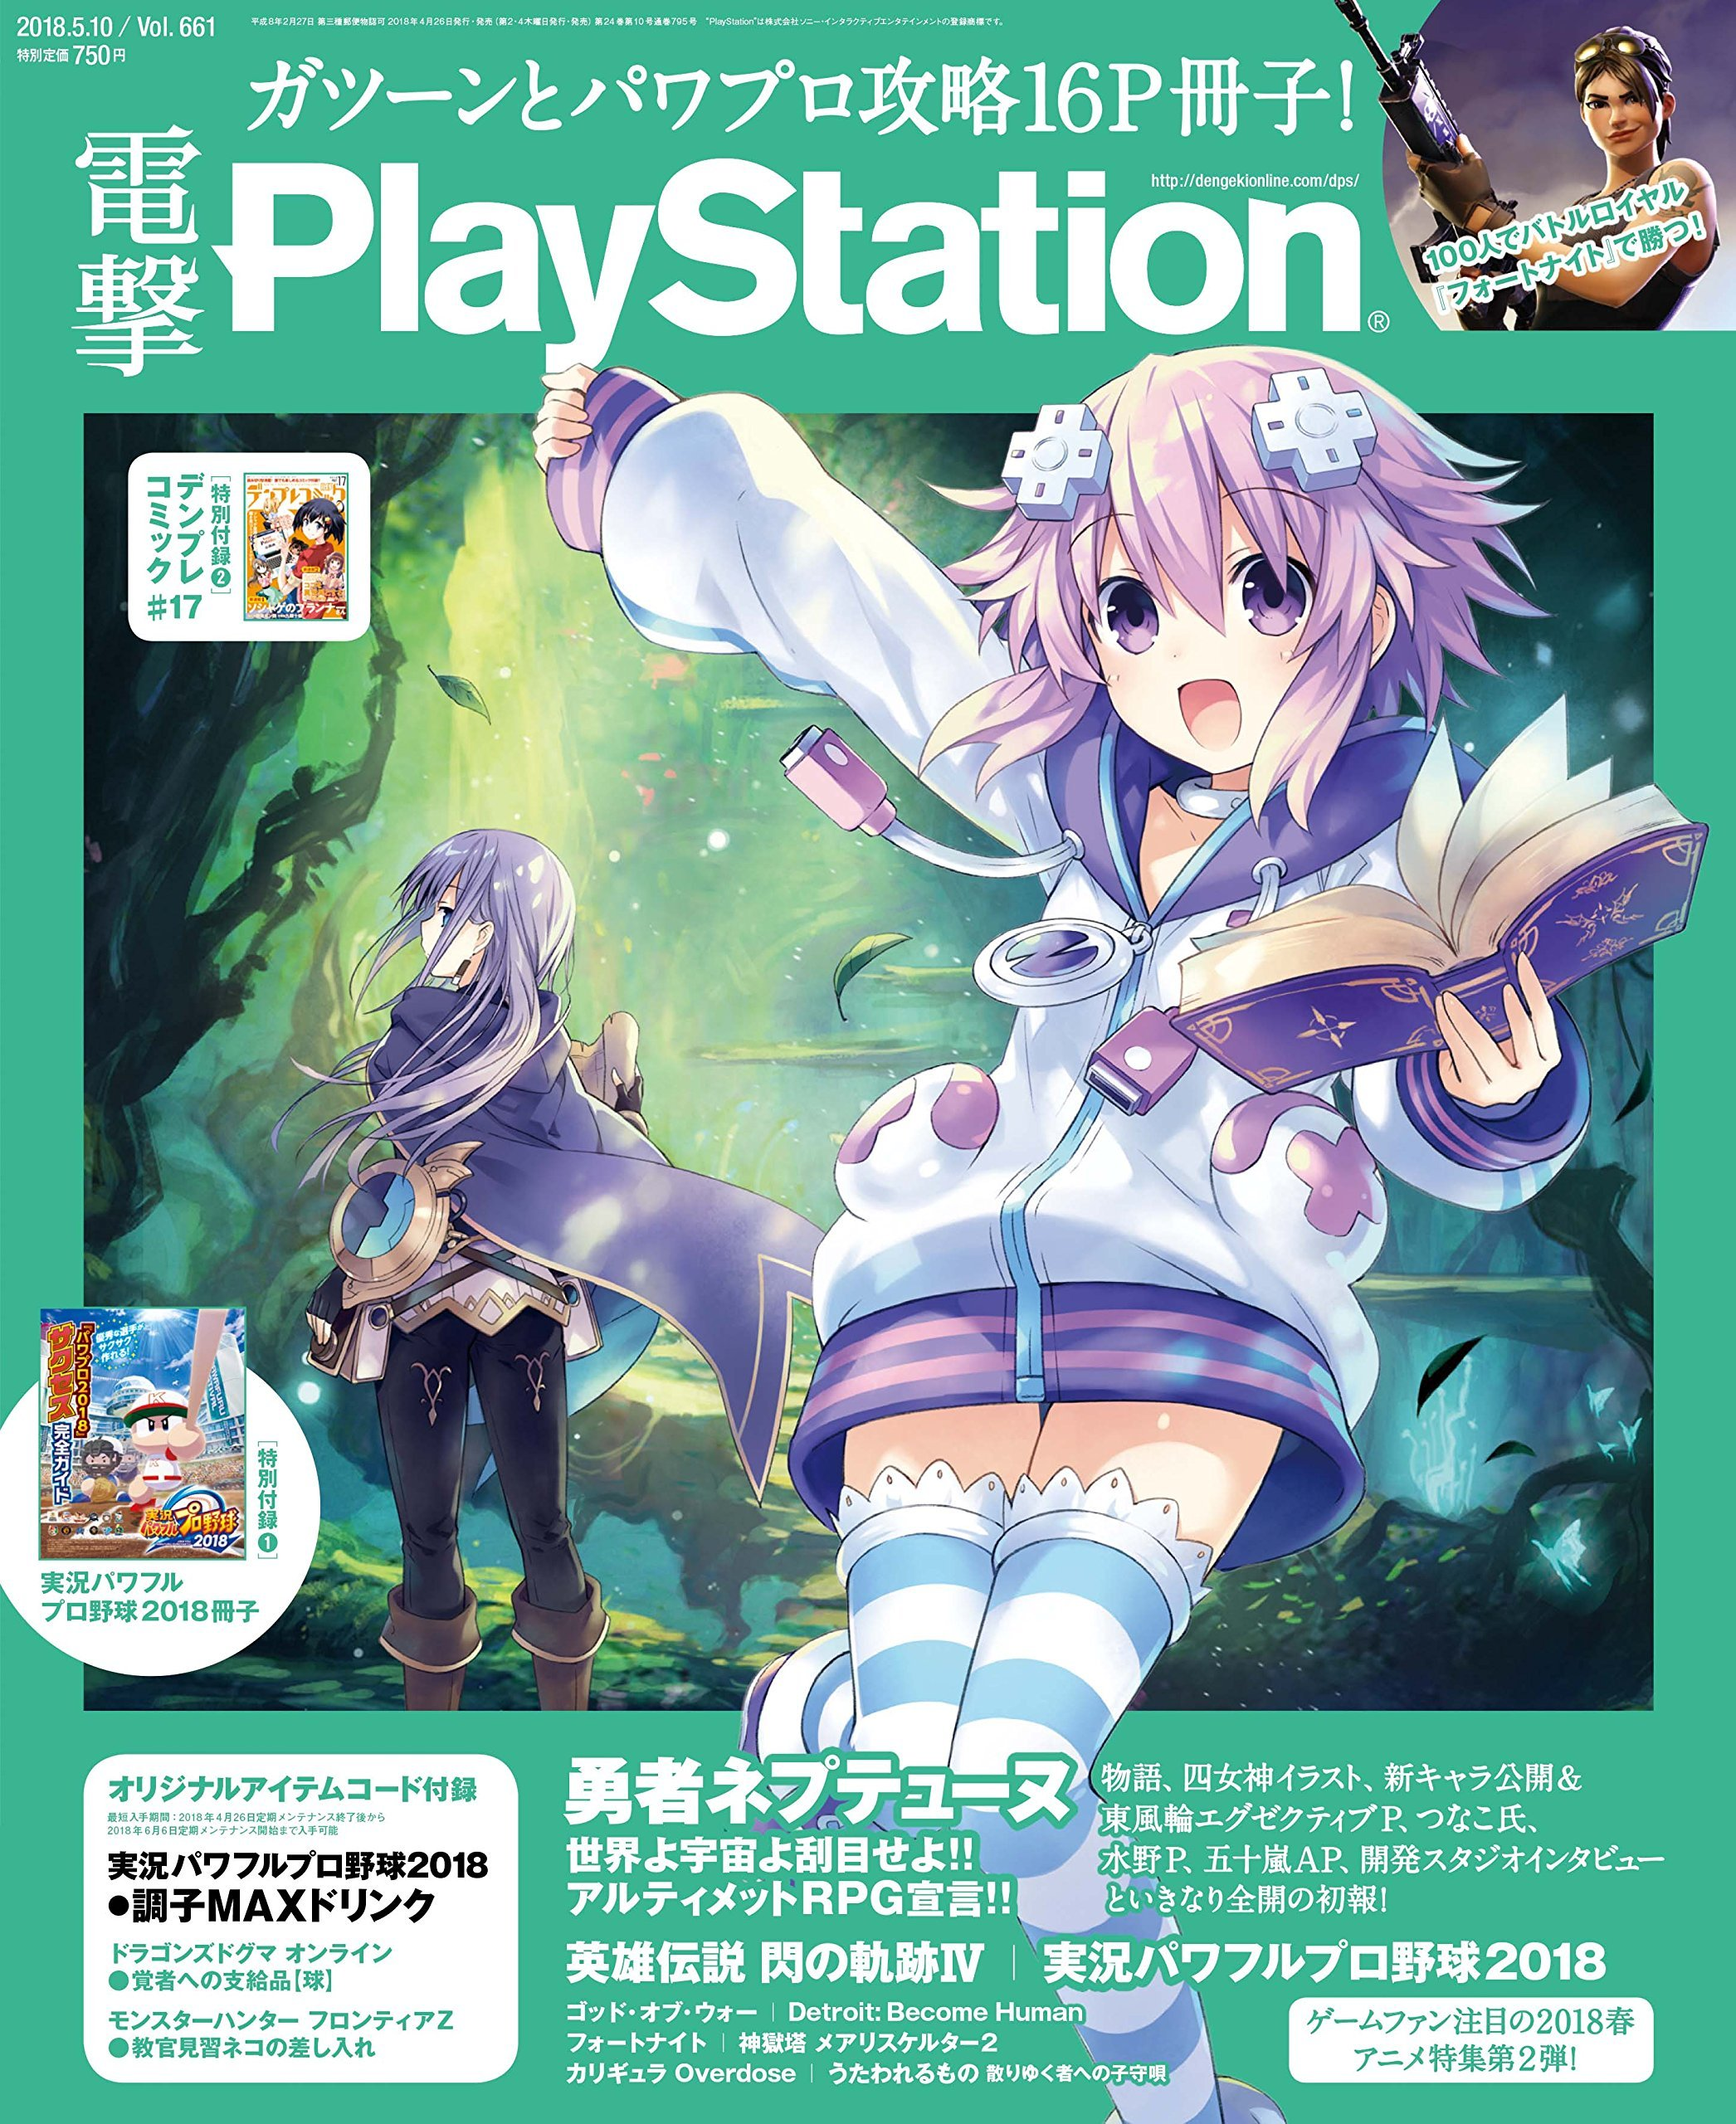 Dengeki PlayStation 661 (May 10, 2018)